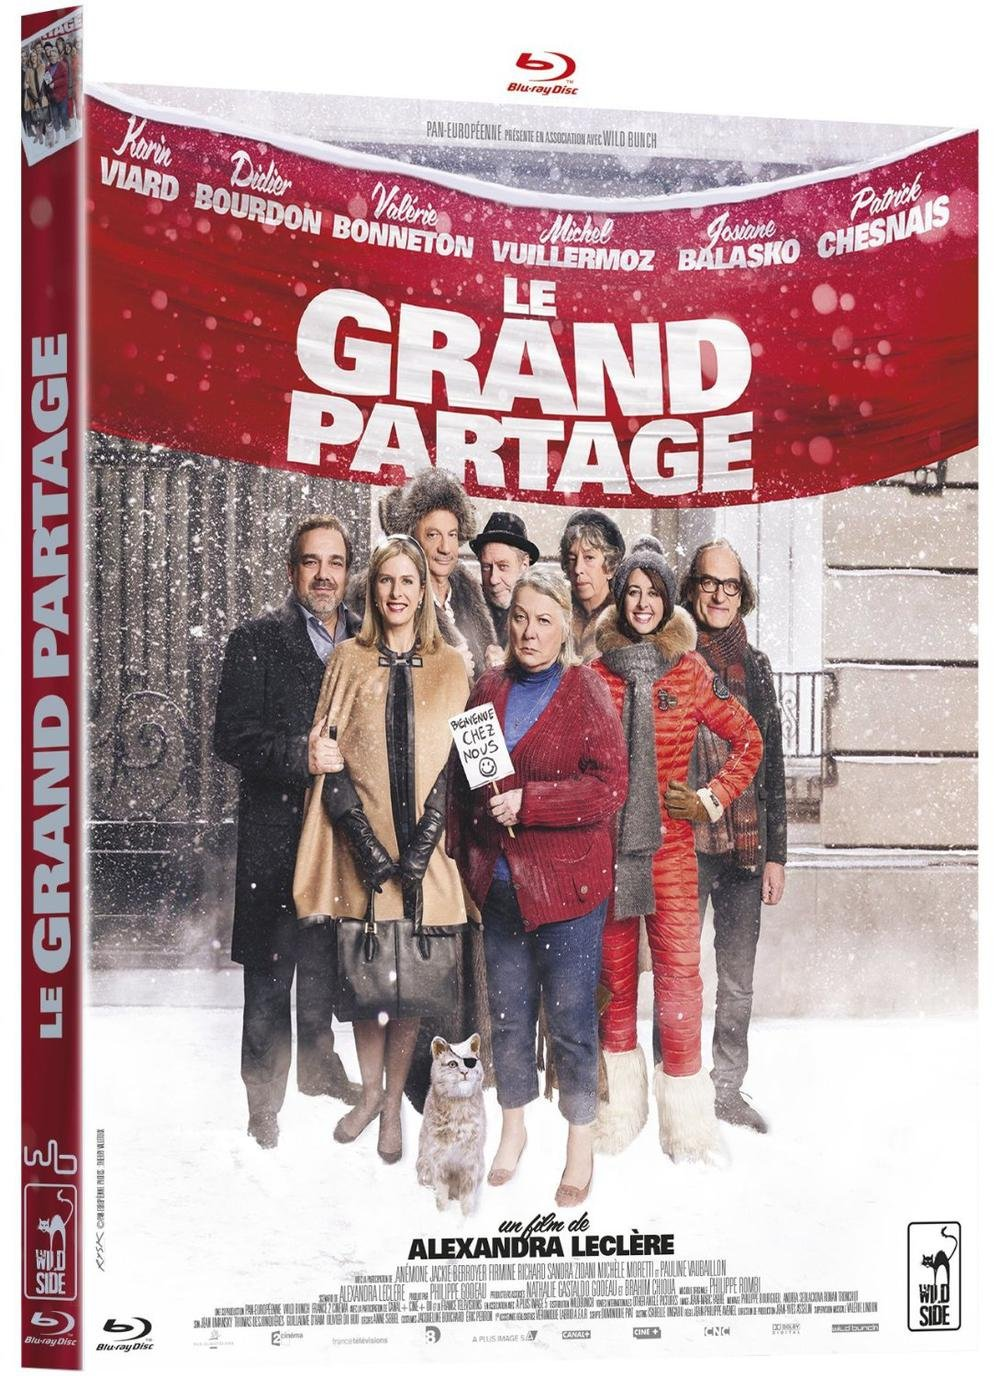 Le Grand partage FRENCH BLURAY 720p